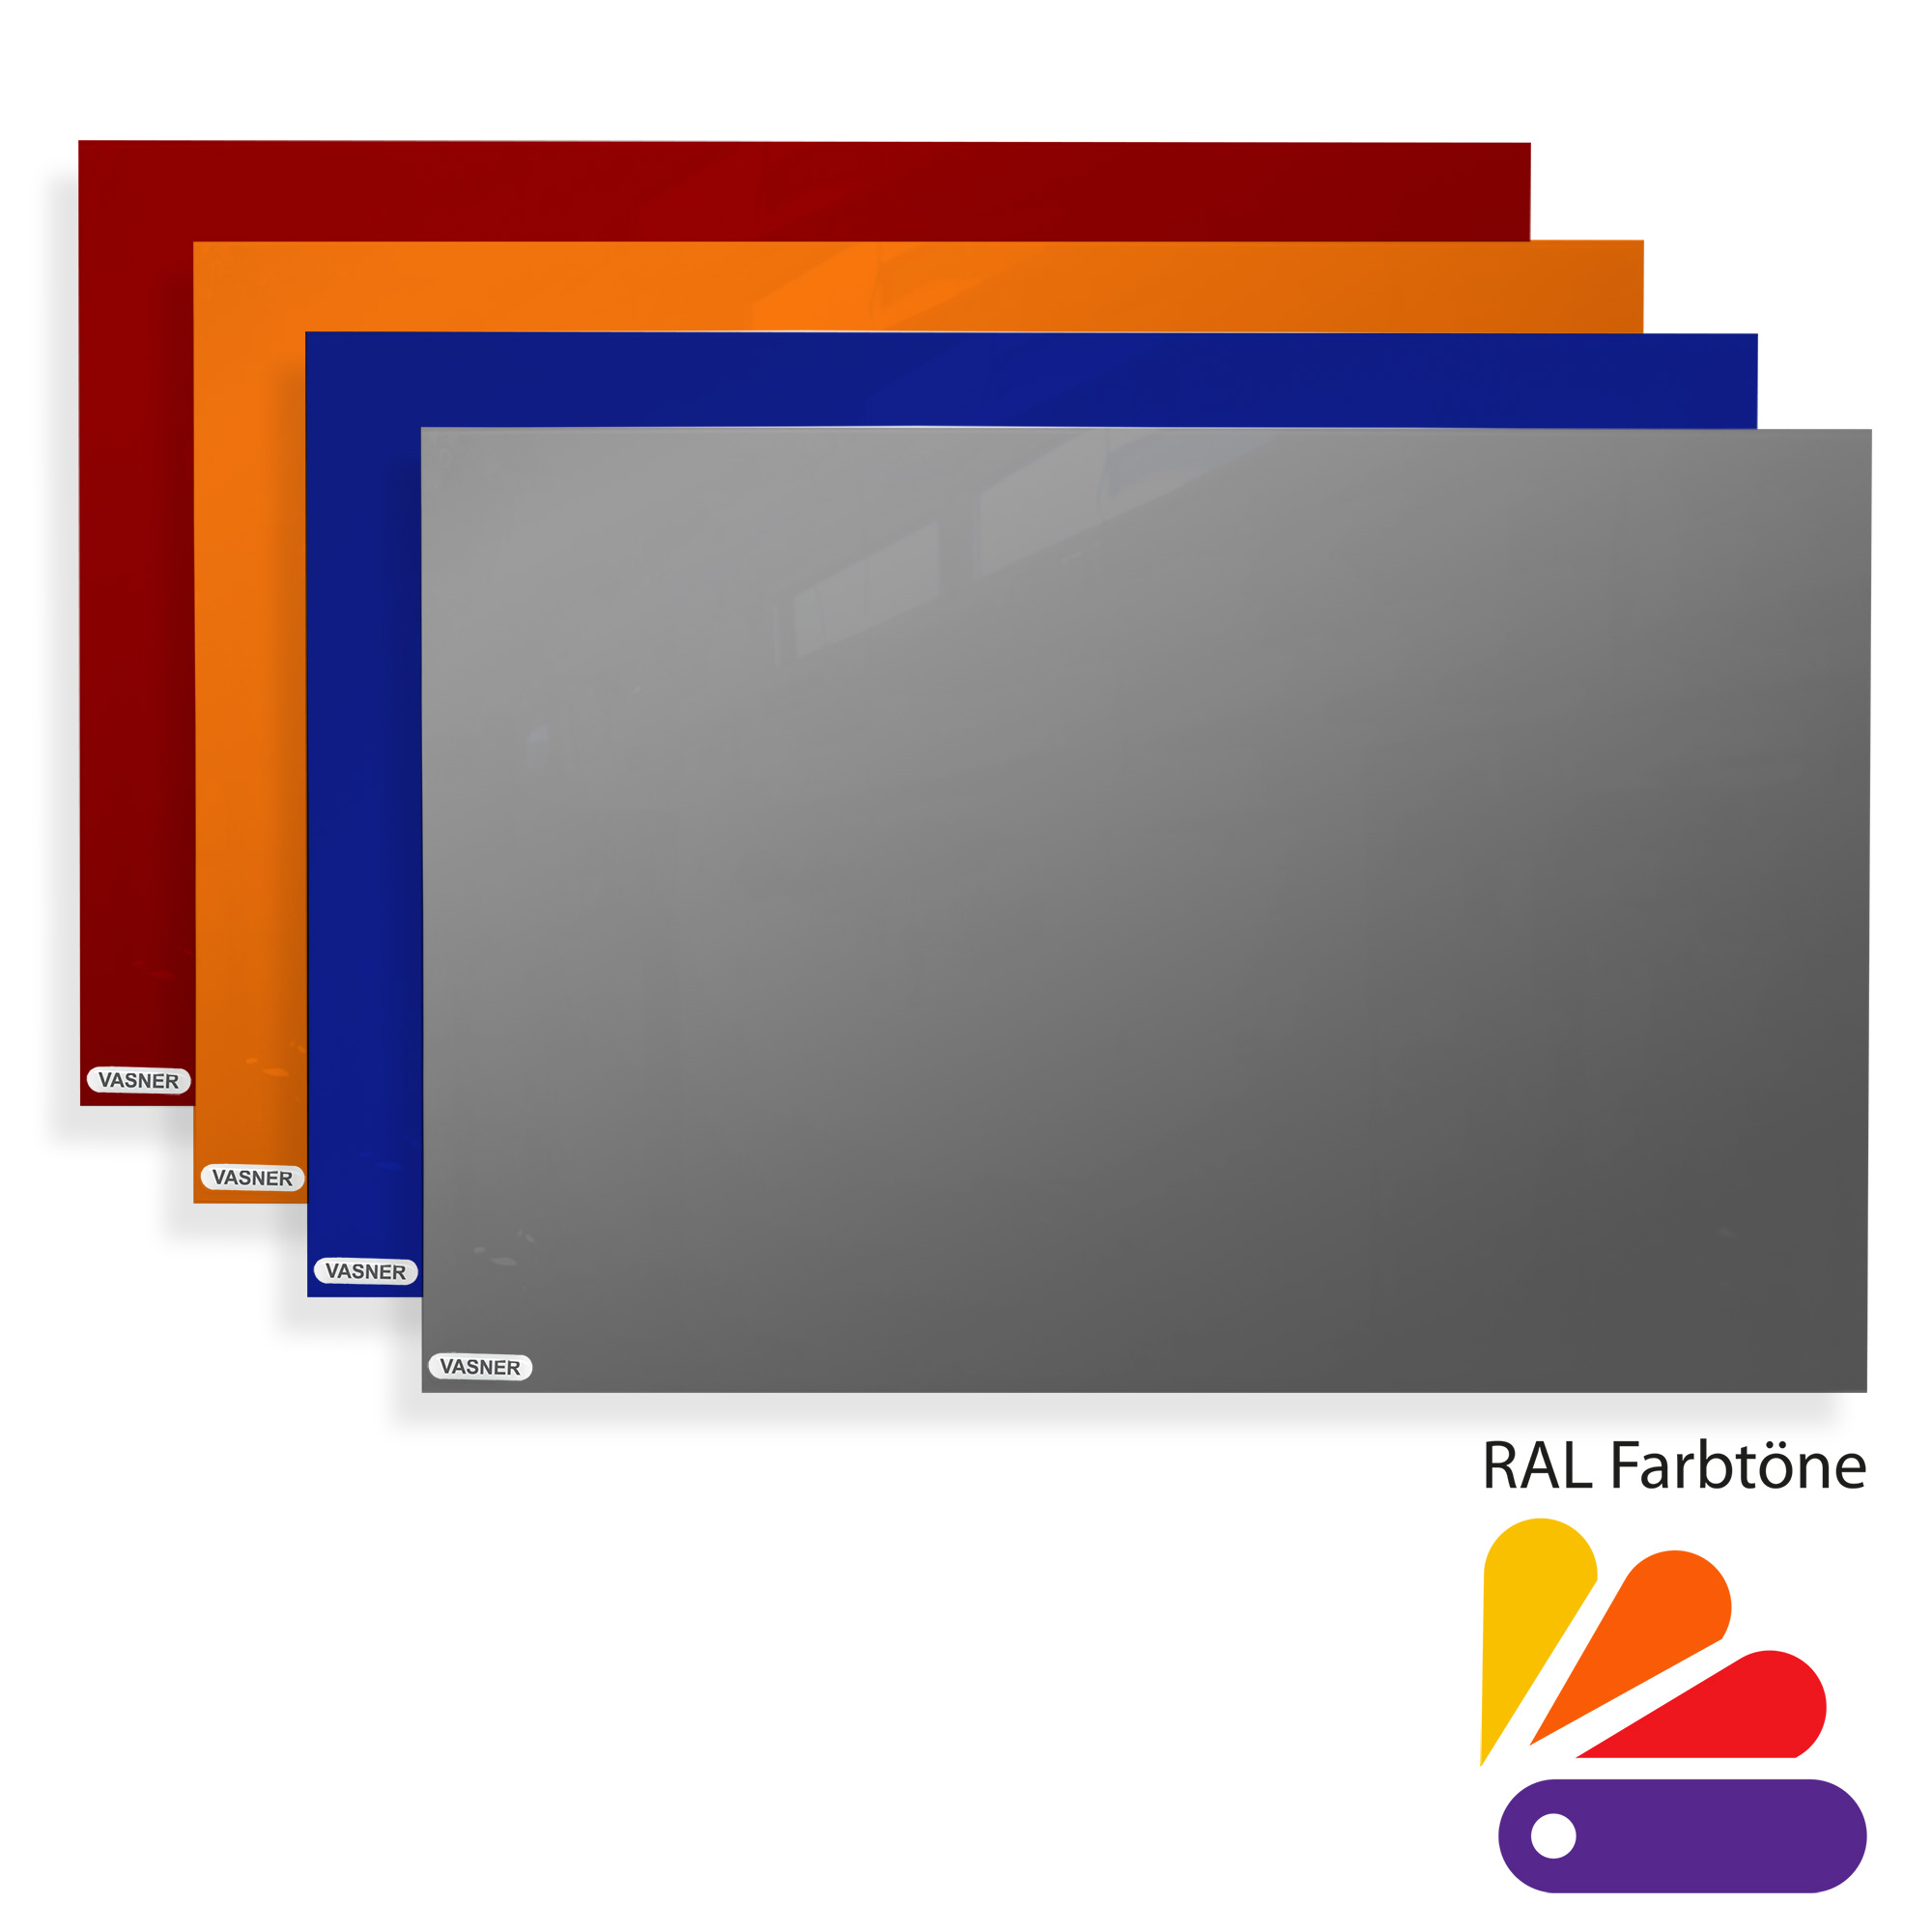 Glas Wandheizung in beliebiger RAL-Farbe